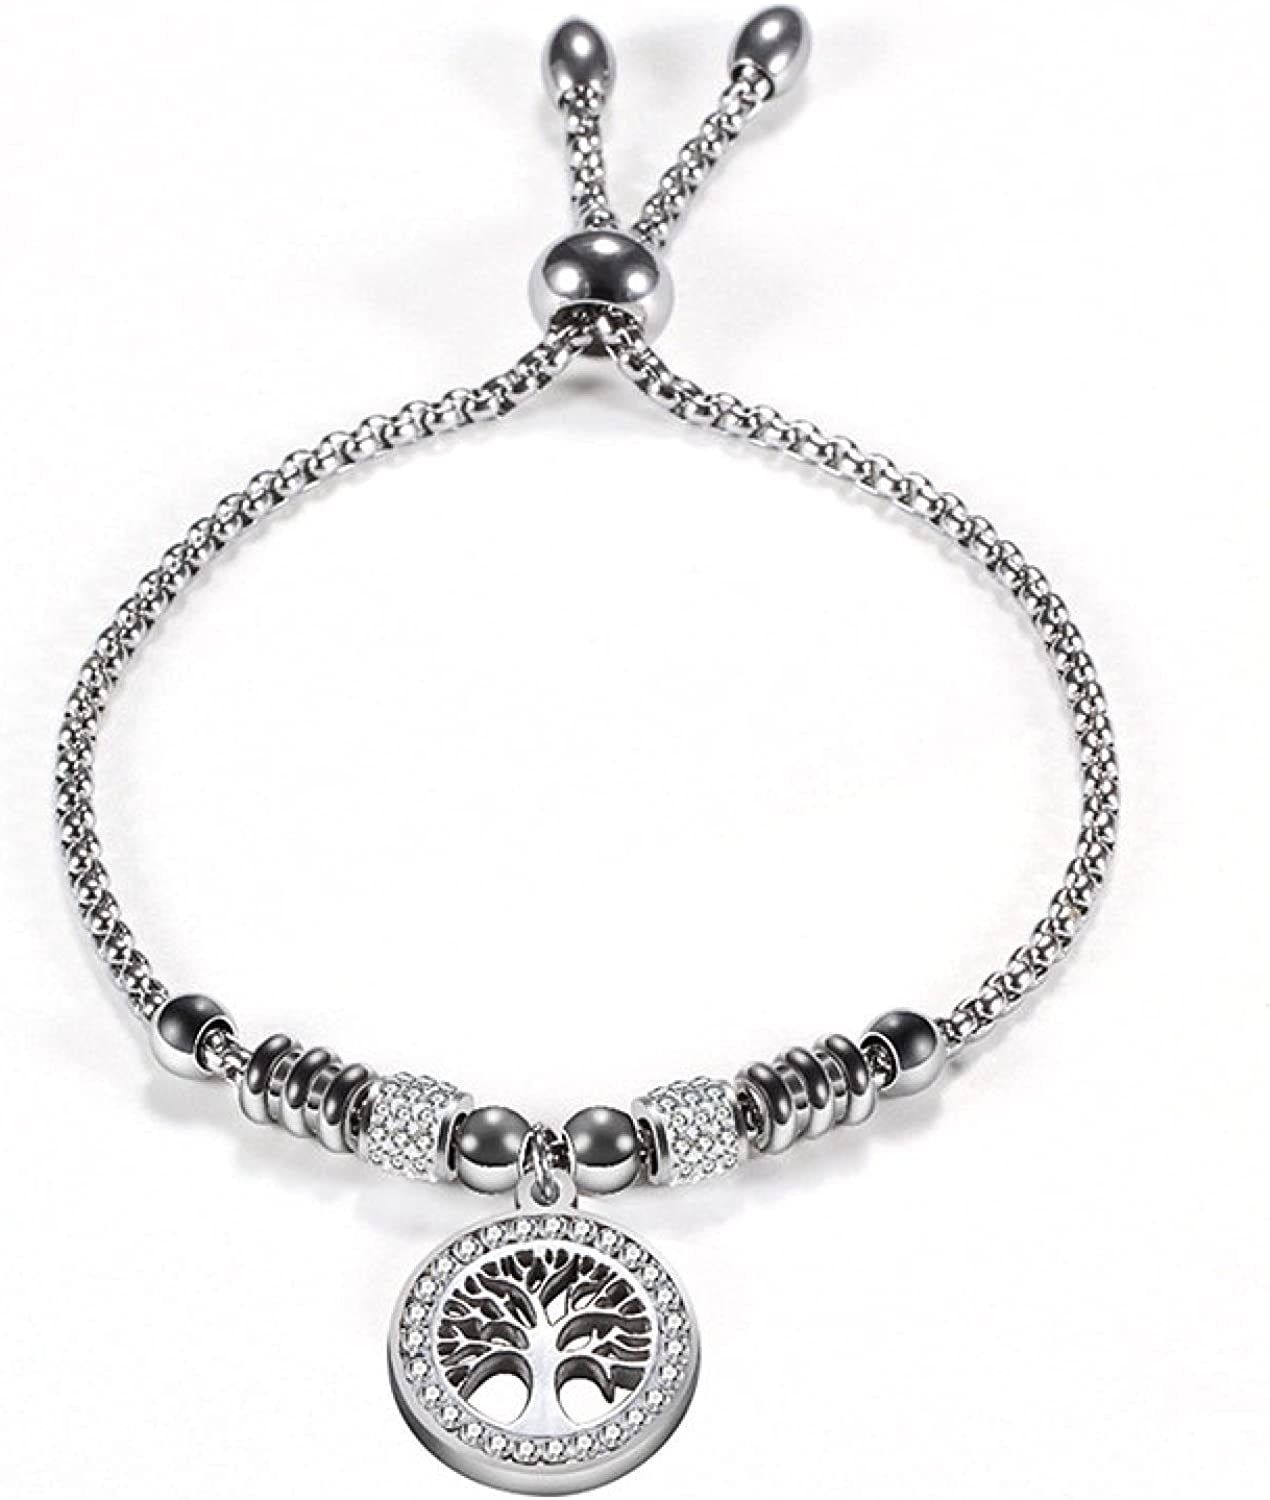 Vintage Max 90% OFF Beauty products Gold Silver Stainless Steel Of Bracelet Life Charm Tree